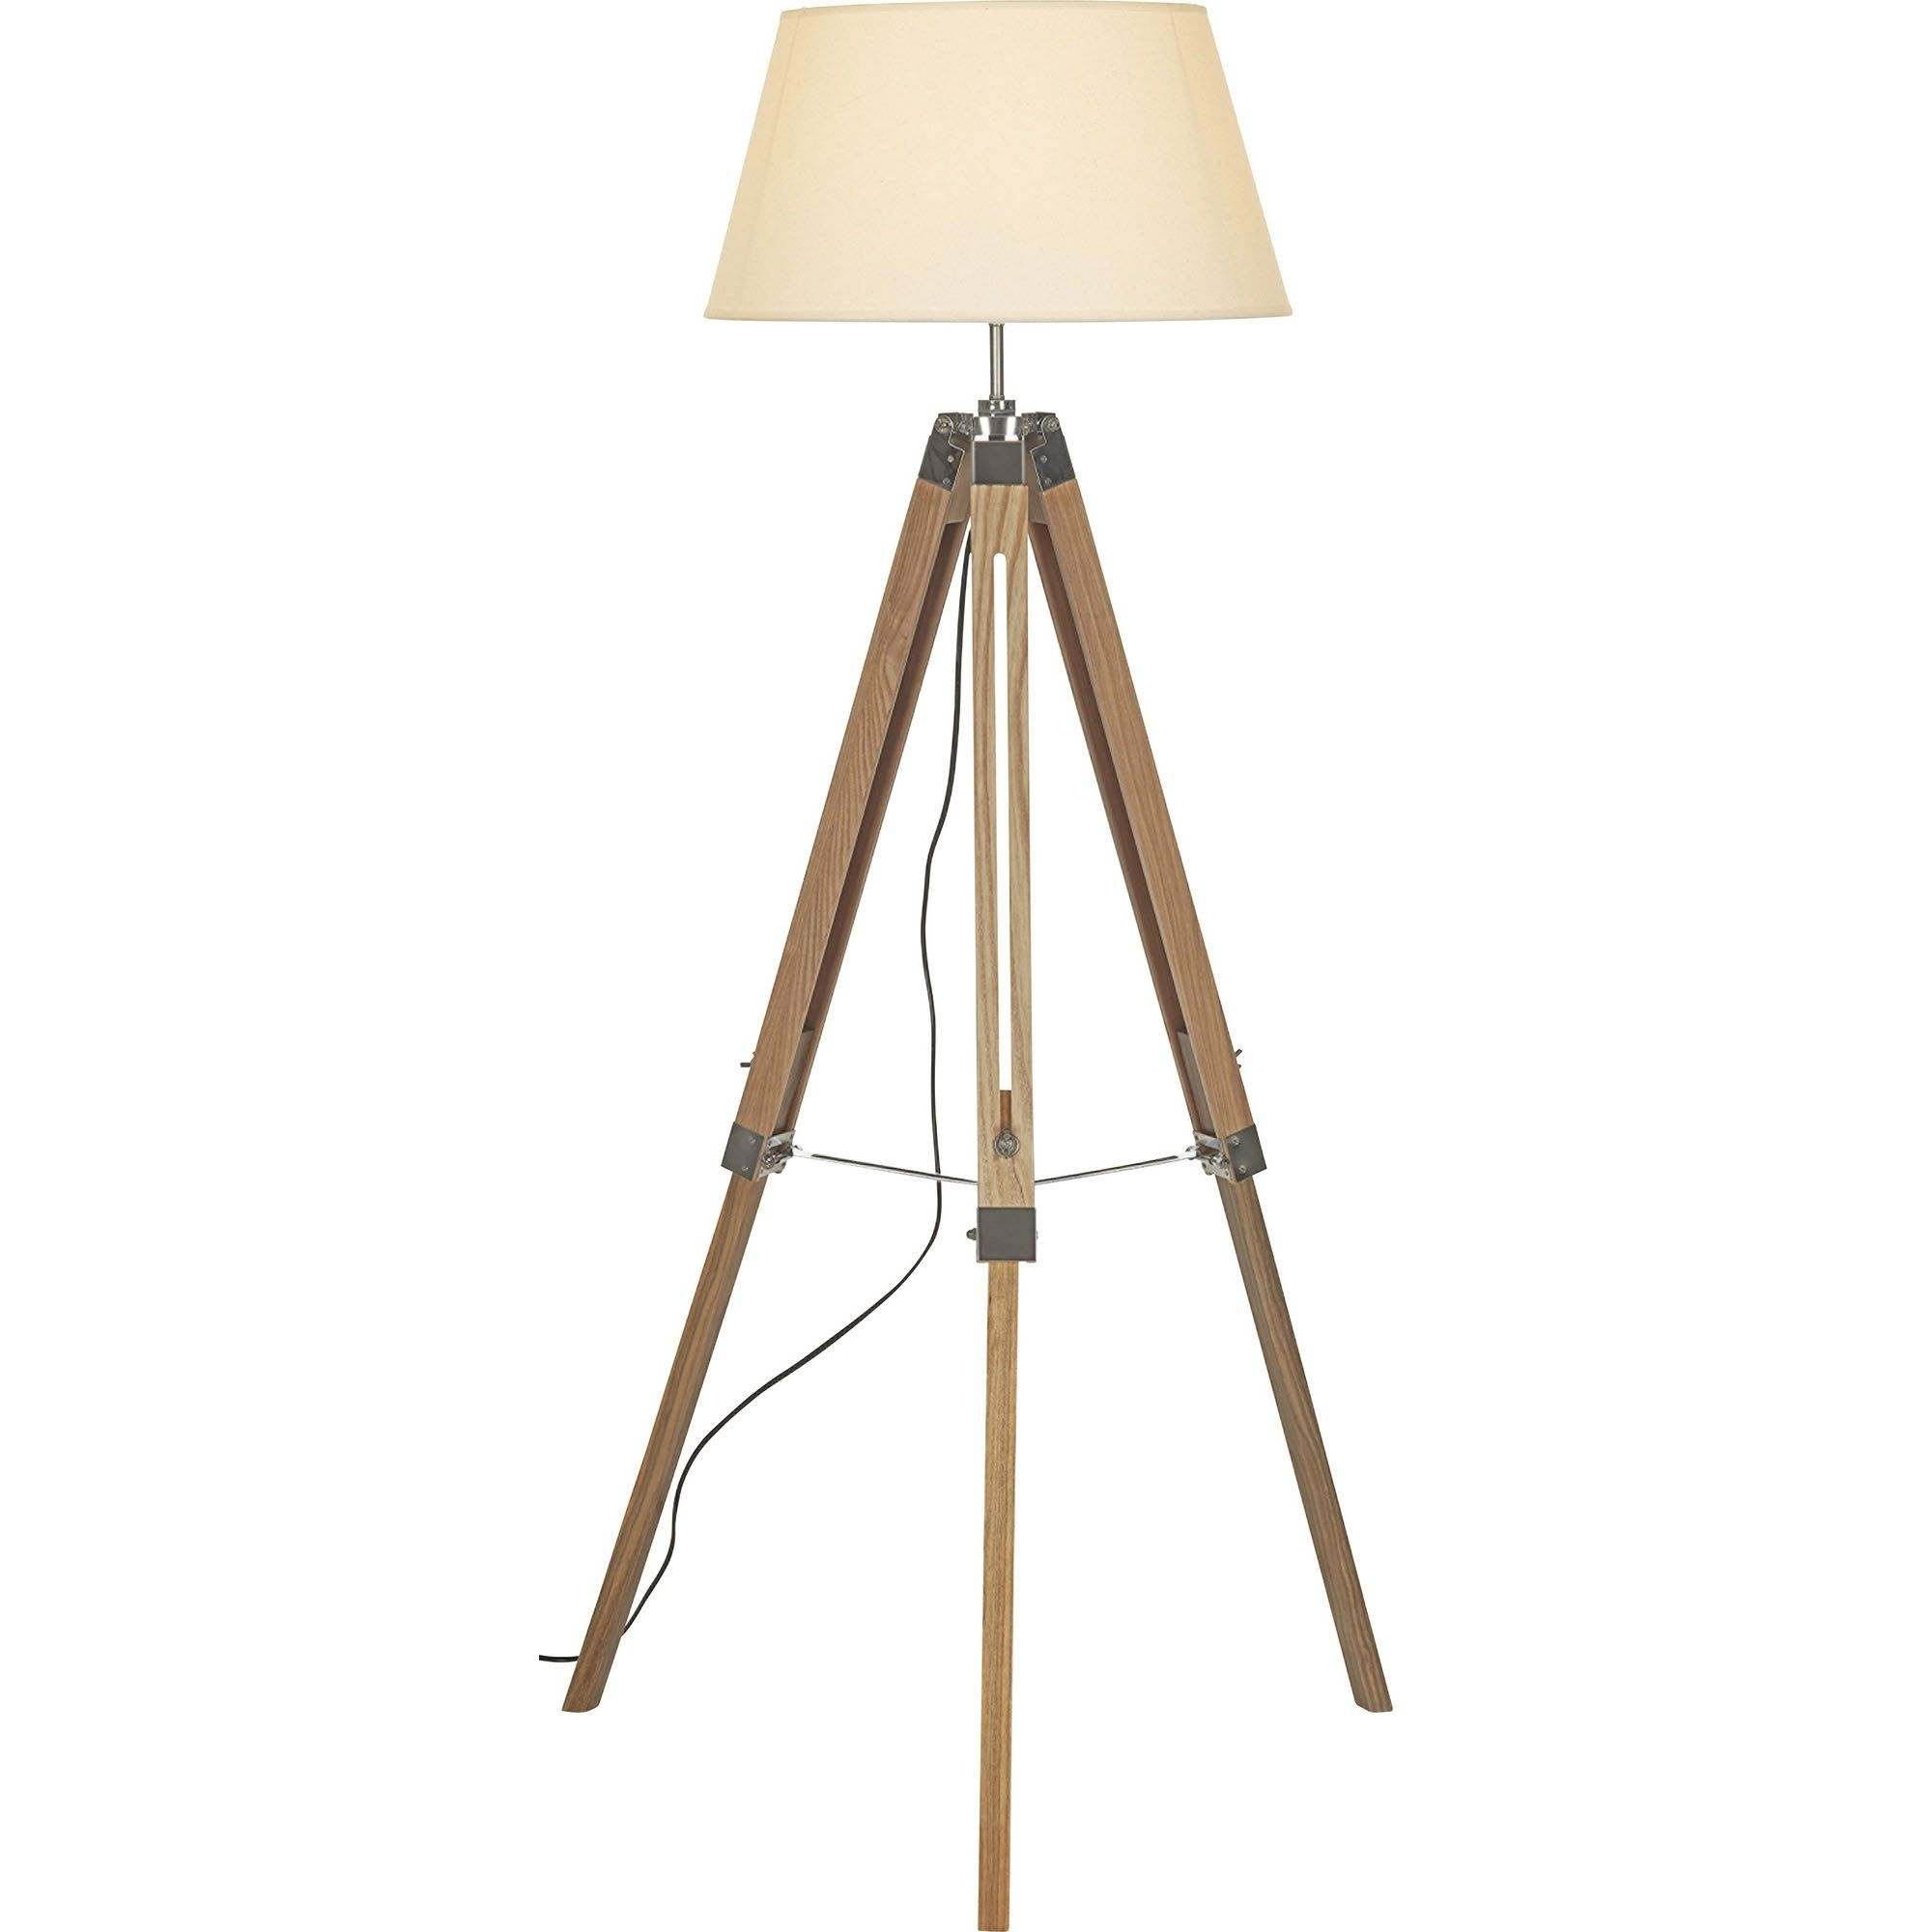 Lamp Leen Bakker Top Staande Schemerlamp Leenbakker Awesome Hanglamp Niels